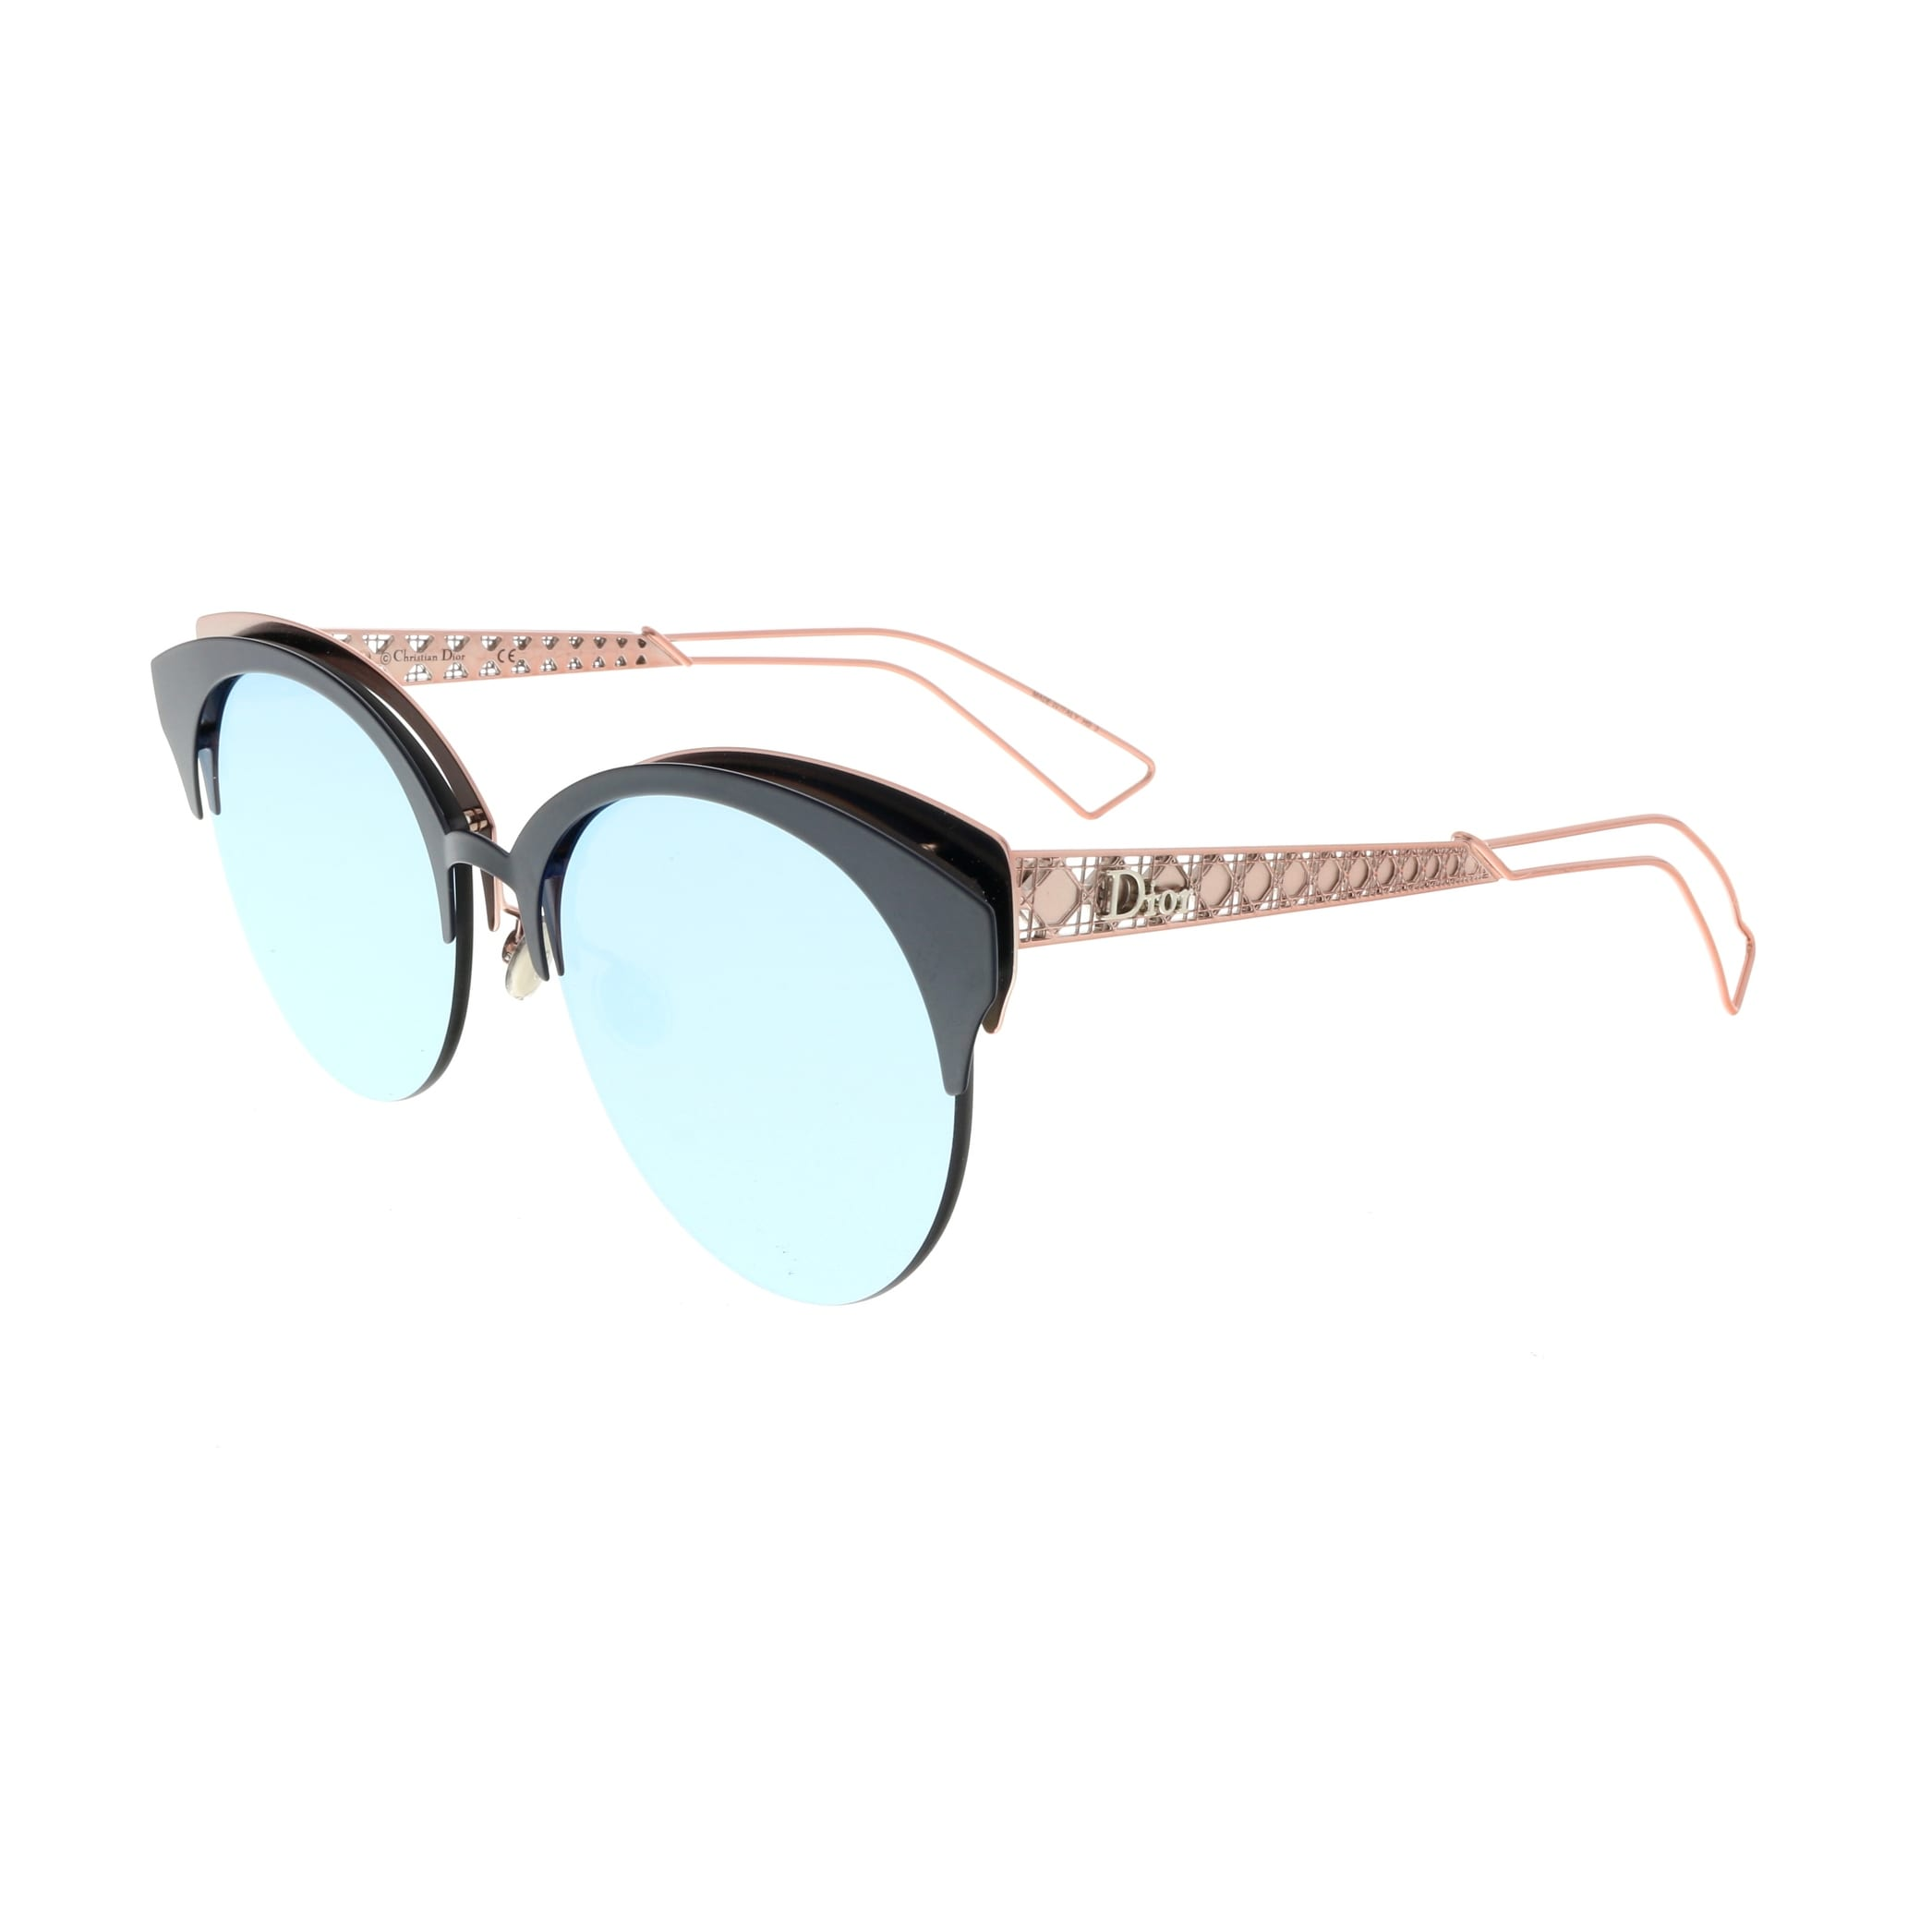 8a5d67af2704 Round Sunglasses | Shop our Best Clothing & Shoes Deals Online at Overstock